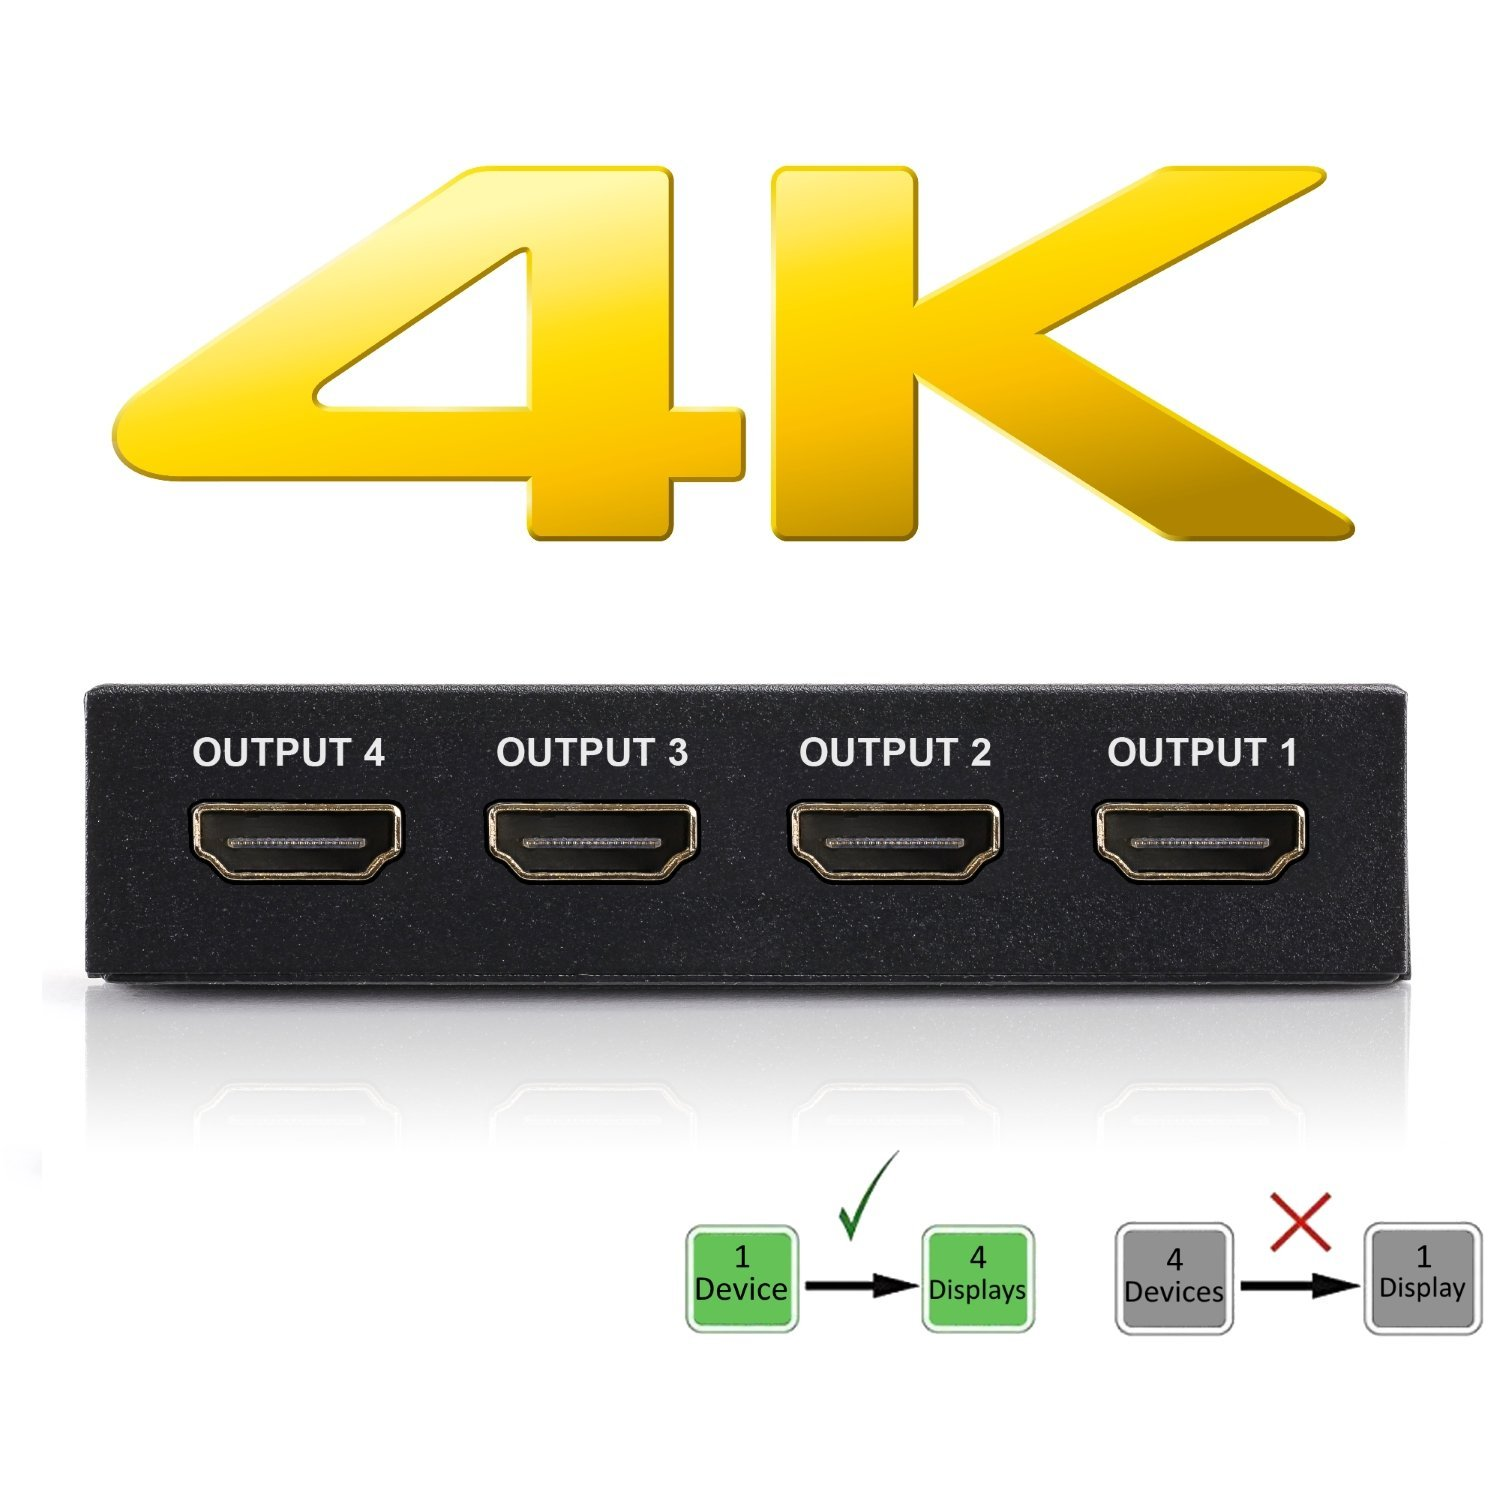 4K HDMI Splitter 1 Input Device to 4 Displays. Save Money by Ditching Extra Cable Boxes Powerful Signal... by eXuby